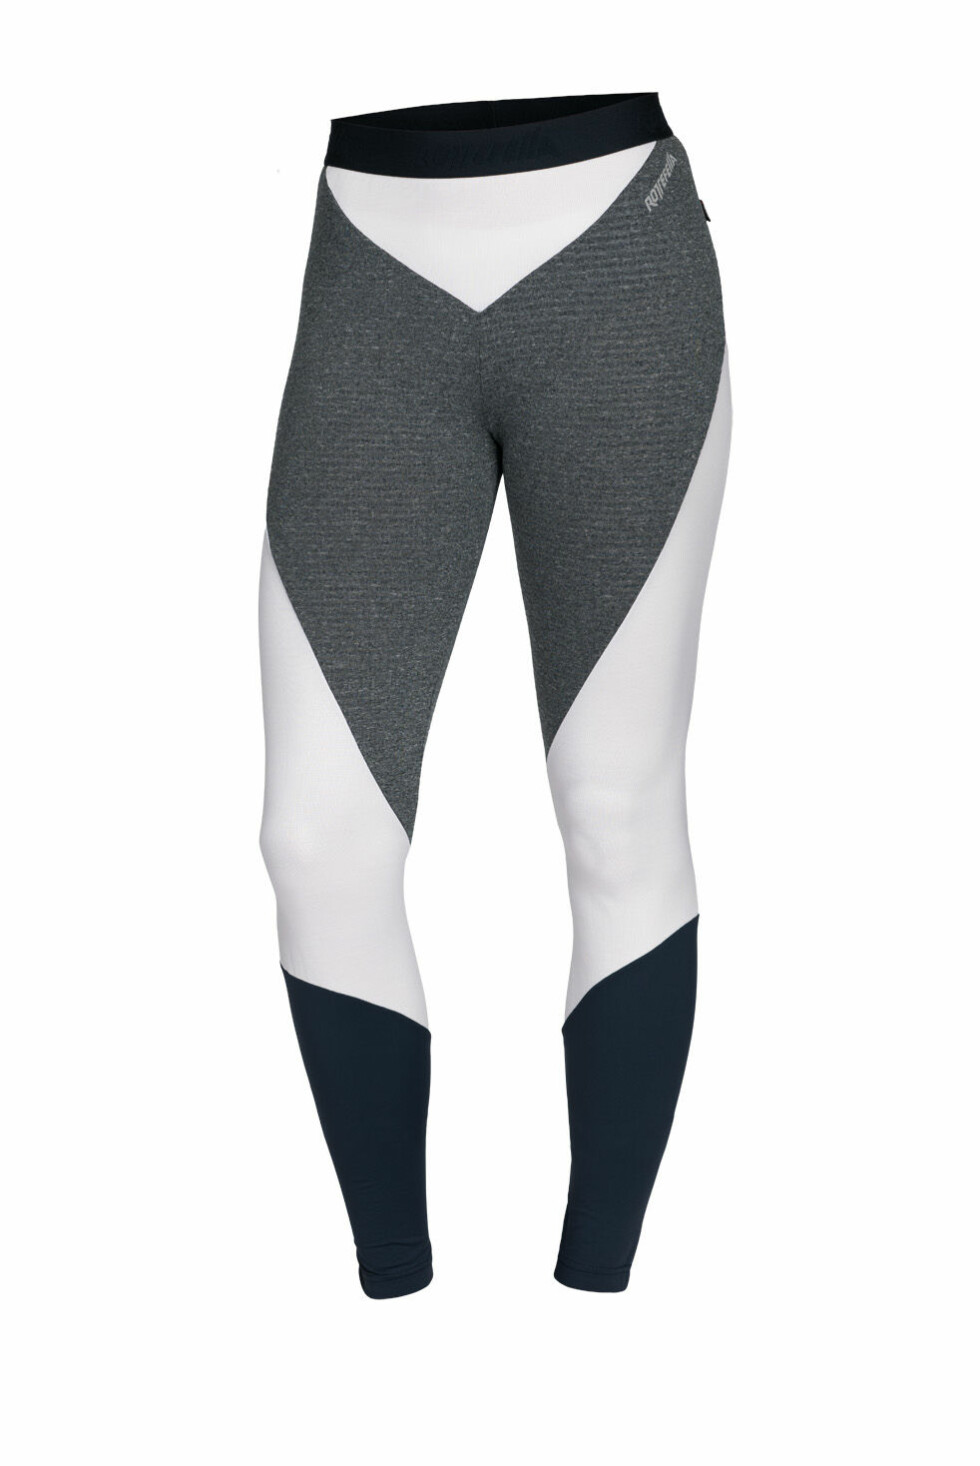 Tights fra Rottefella |1199,-| https://thejuice.no/product/underdeler/rottefella-dynamic-tights-2/